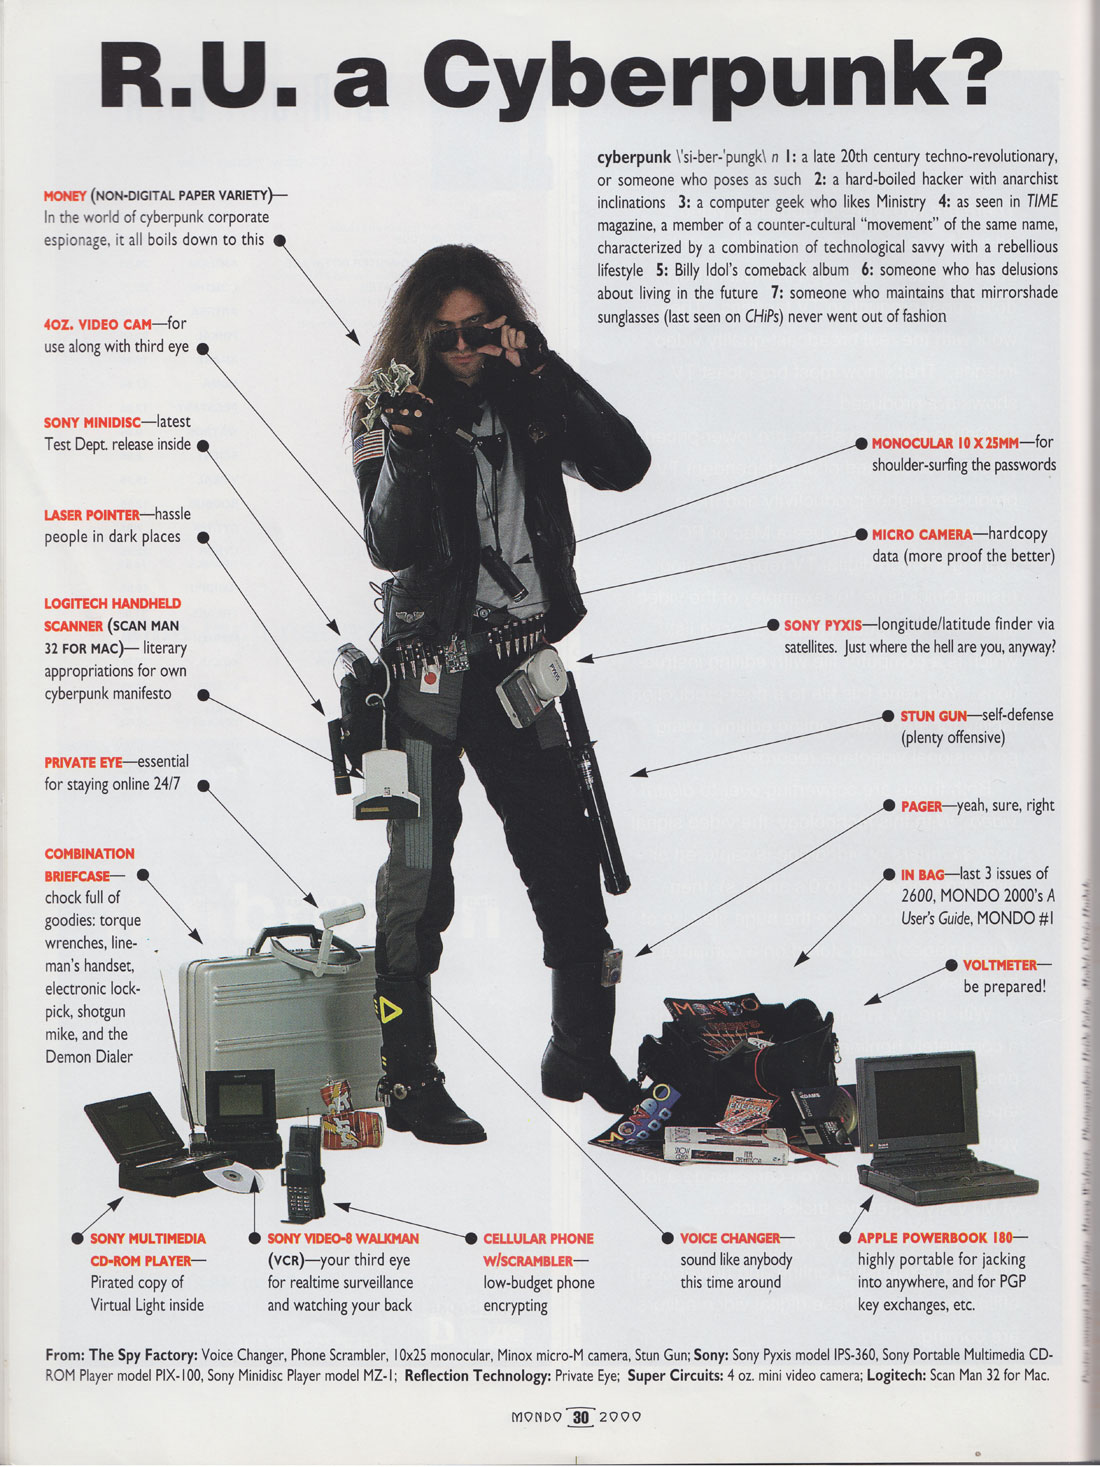 Cyberpunks From The '90s: An Unusual Kind Of Retro [Chart]